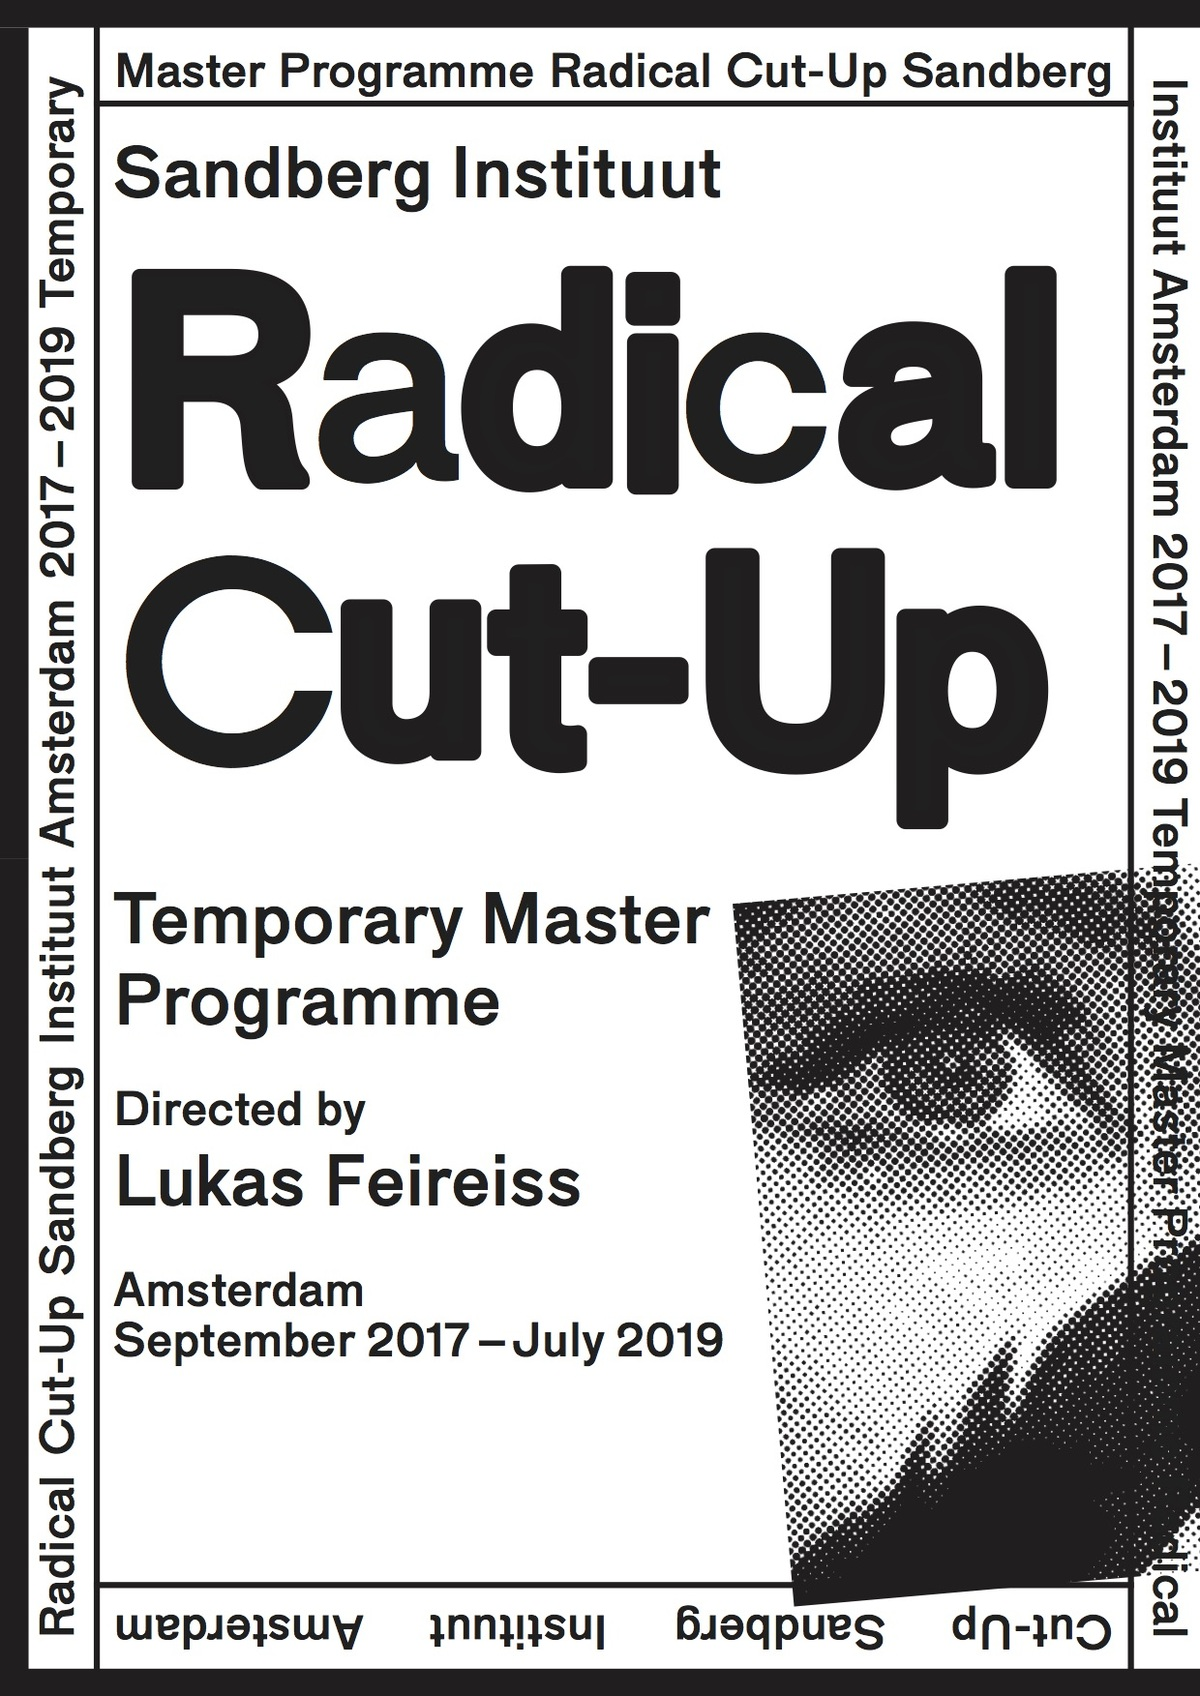 A poster for Feireiss Radical Cut-Up Masters Program at the Sandberg Instituut. Image courtesy Lukas Feireiss.